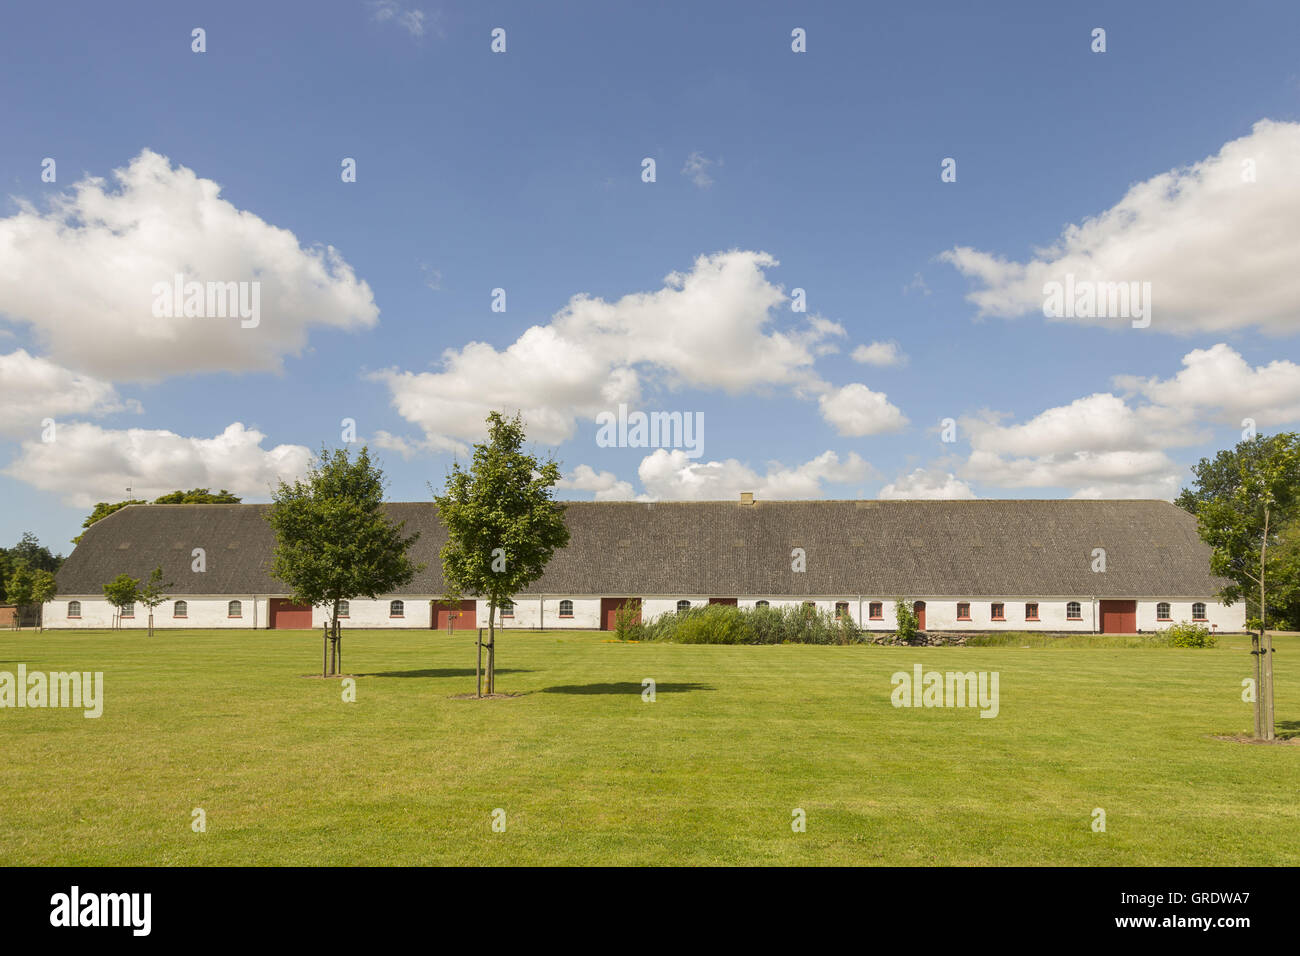 Elongated, White Stables In The Park At Fuglsang - Stock Image